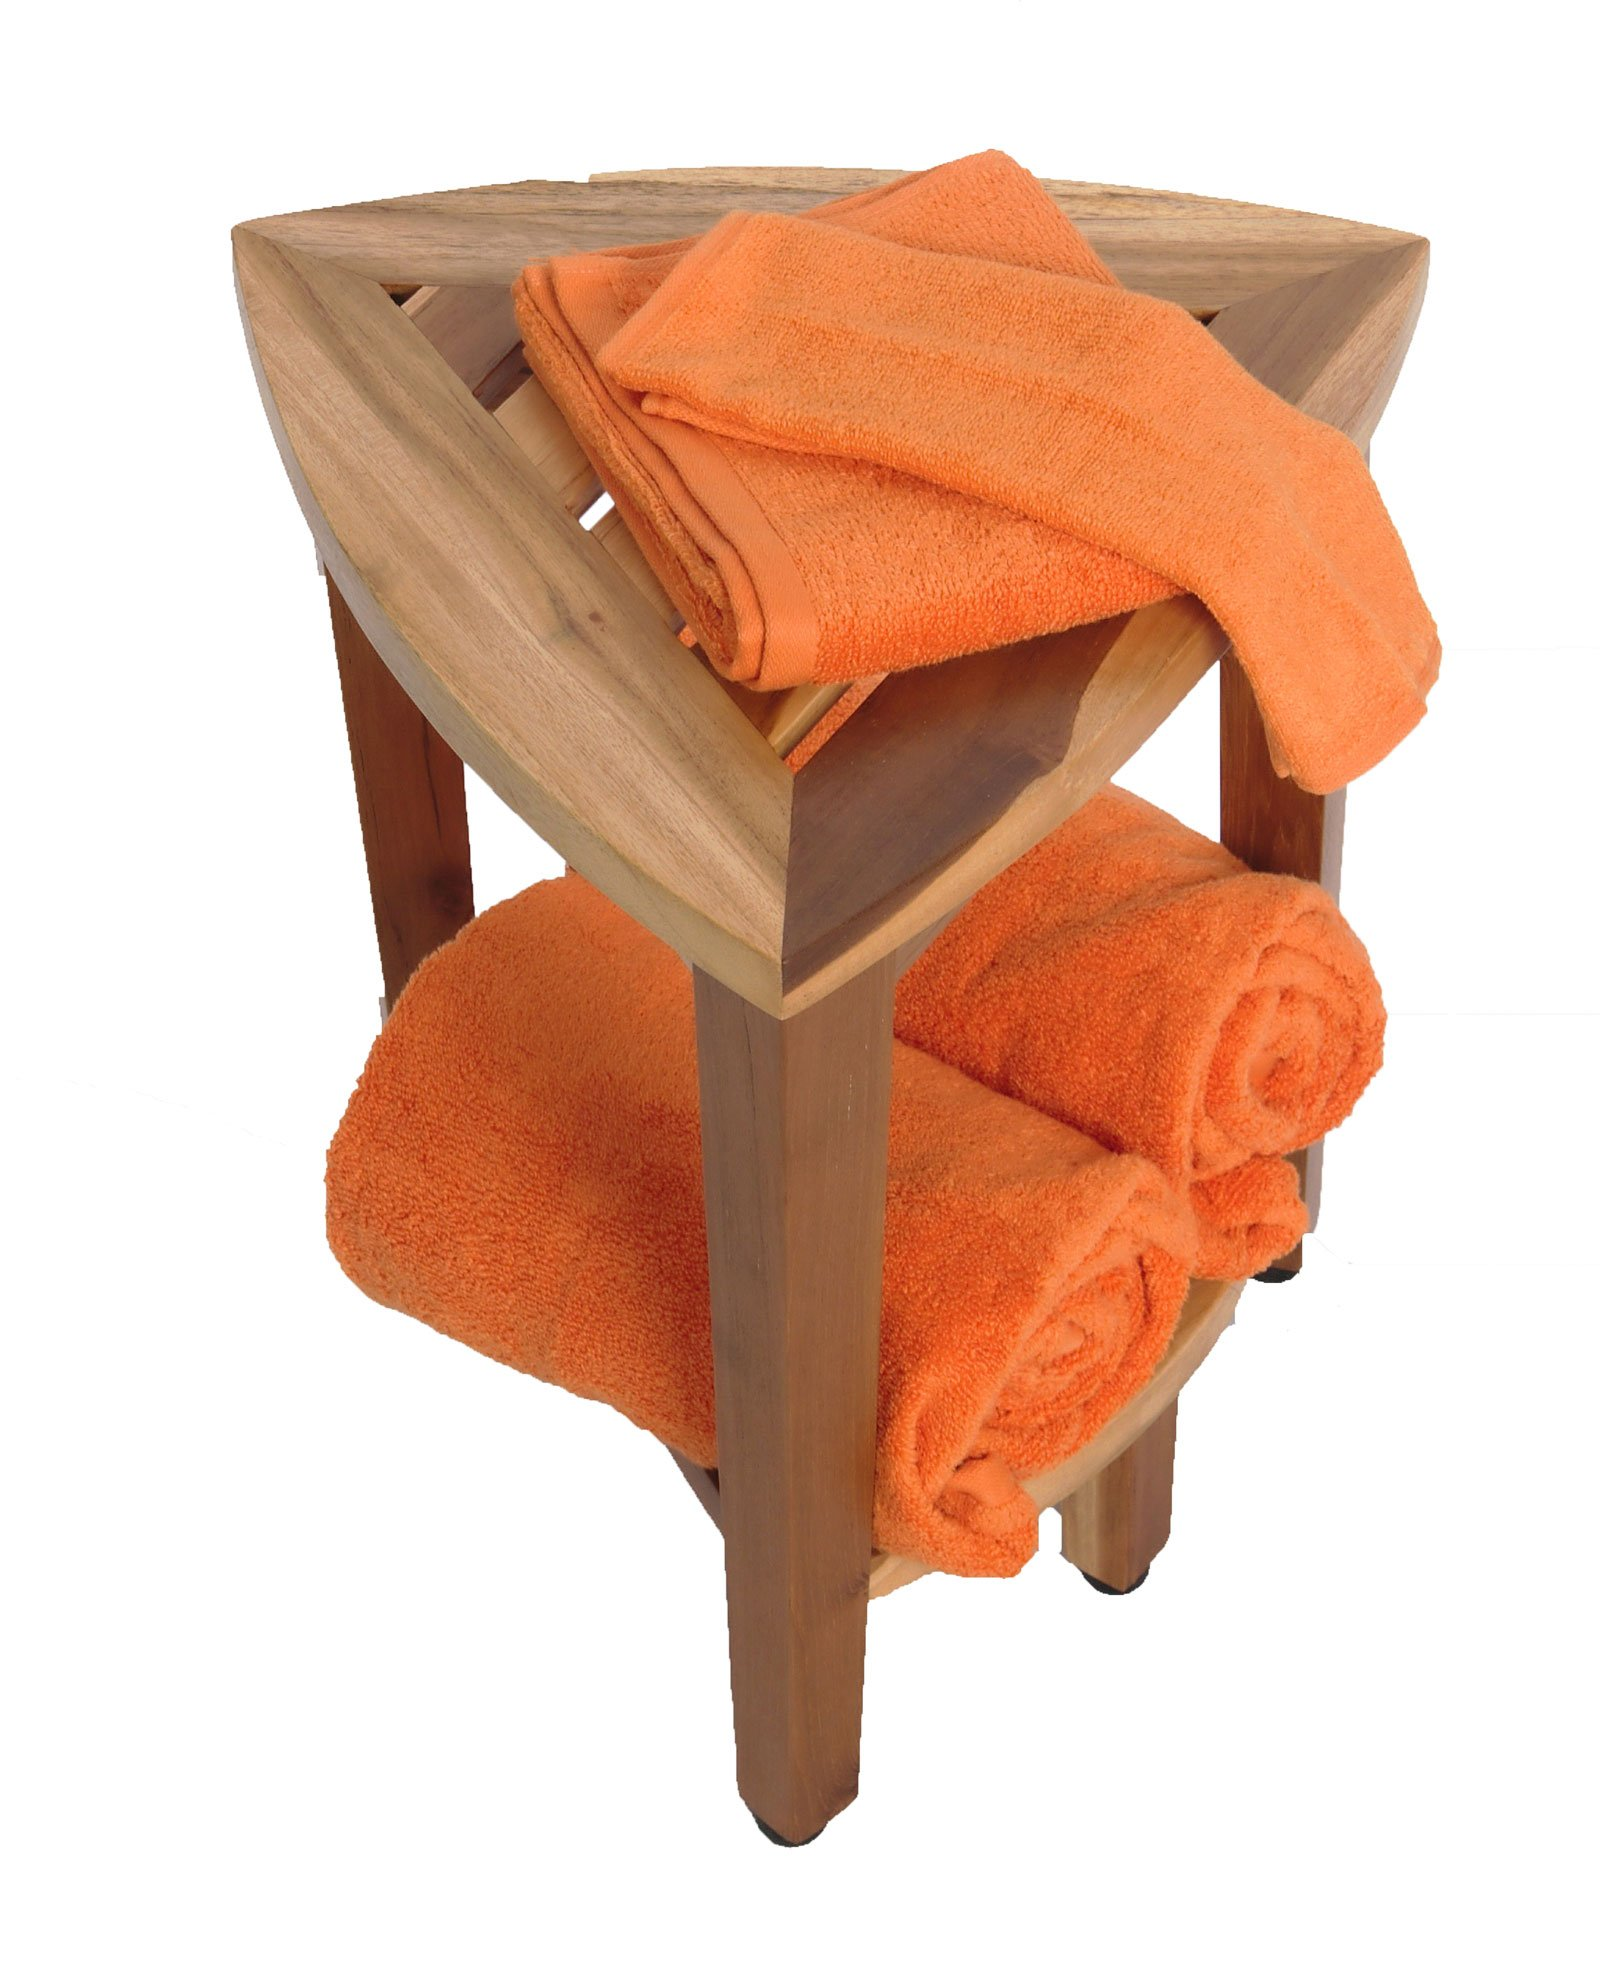 New- 18'' EcoDecors EarthyTeak™-Patent Pending- FULLY ASSEMBLED Compact Teak Corner Shower Bench With Shelf- Shower Sitting, Storage, Shaving Foot Rest by EcoDecors (Image #7)